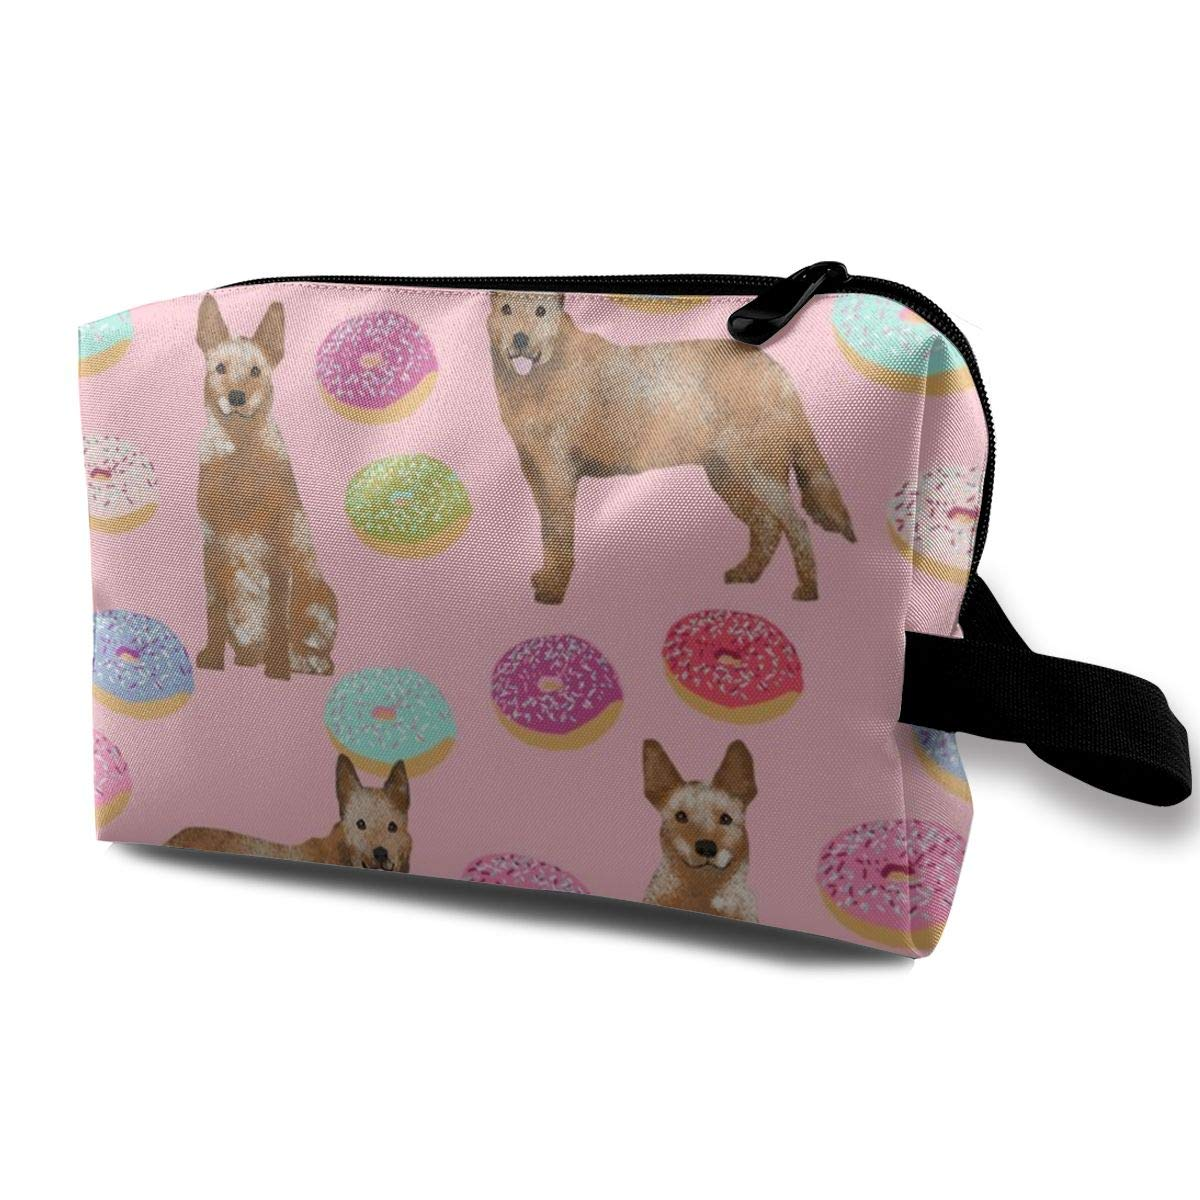 18466a3c454a Makeup Bag Portable Travel Cosmetic Bag Australian Cattle Dog Donuts -  Donuts, Dog Donut, Food, Cute Dog, Pet Friendly - Red Heeler - Pink Mini  Makeup ...